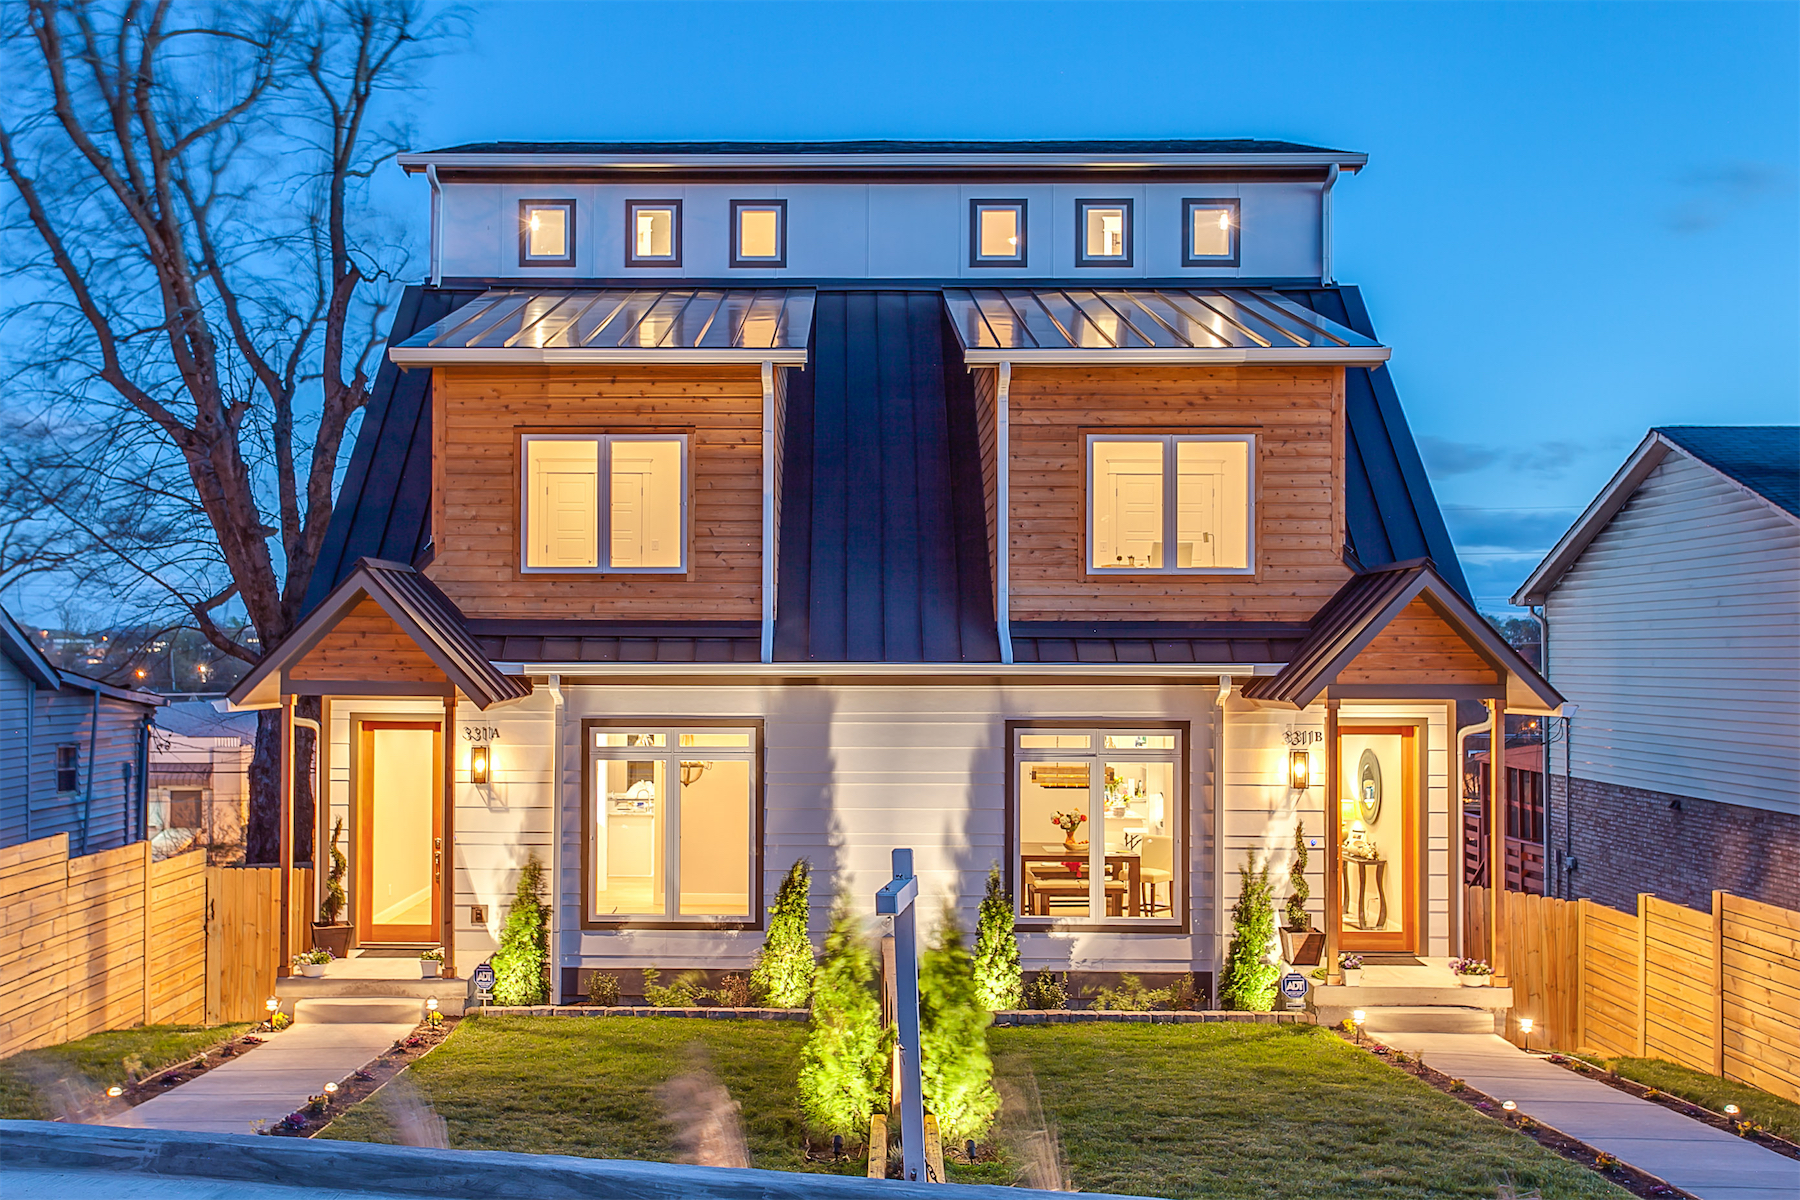 Single Family Home for Sale at Extraordinary Custom Home with Downtown Views 3311A Felicia Street Nashville, Tennessee 37209 United States